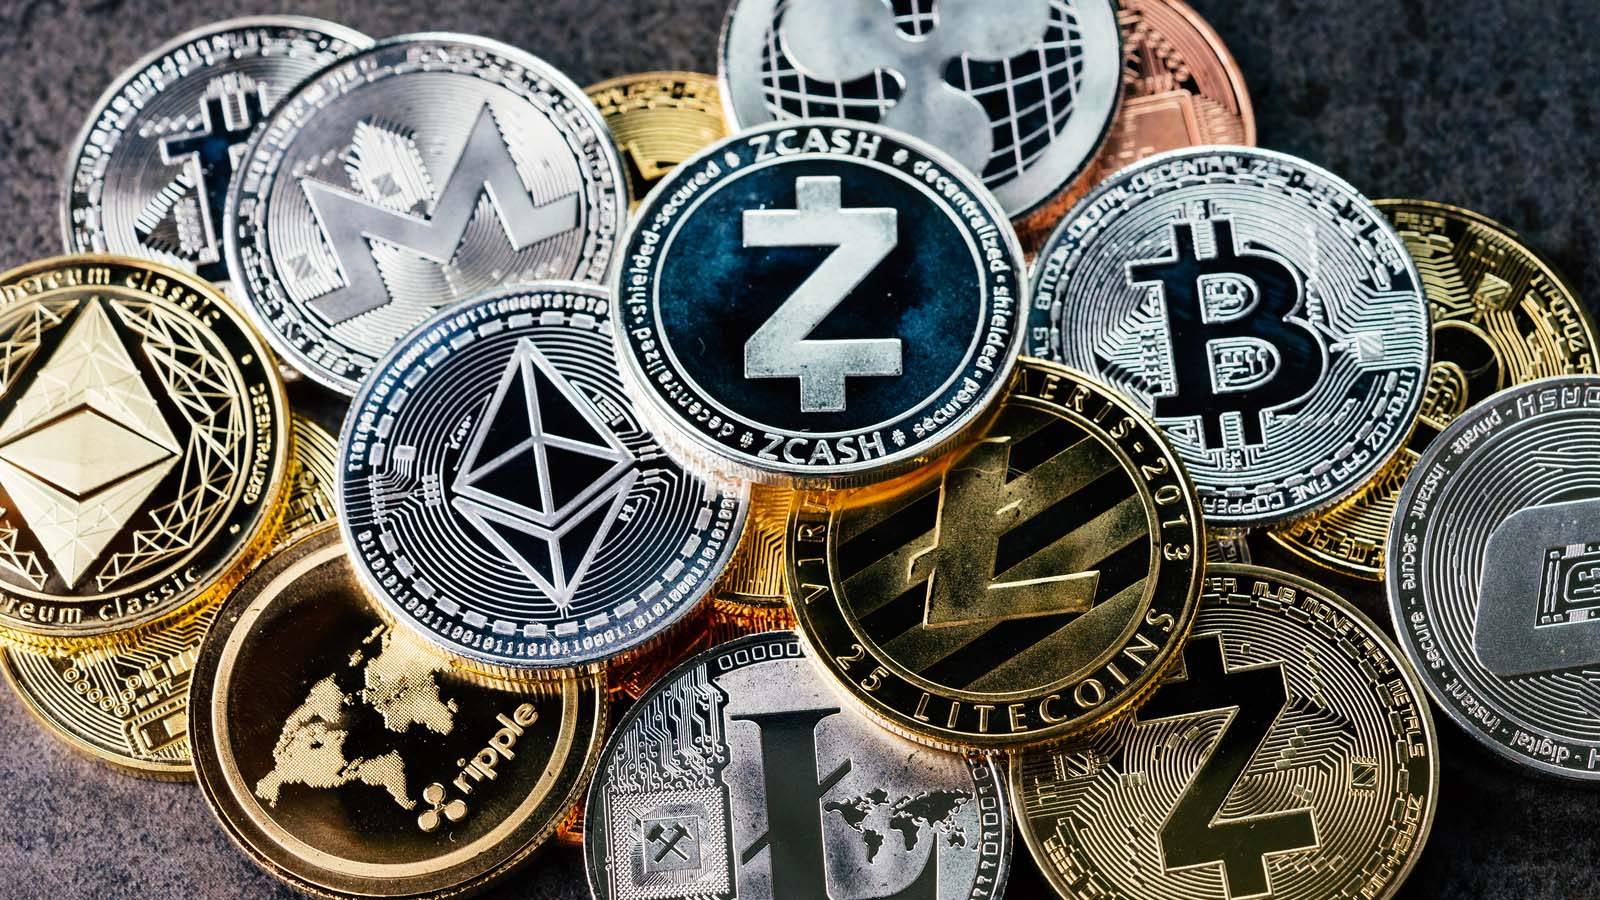 cryptocurrencies - 7 Explosive Cryptocurrencies to Buy for the Bitcoin Halvening